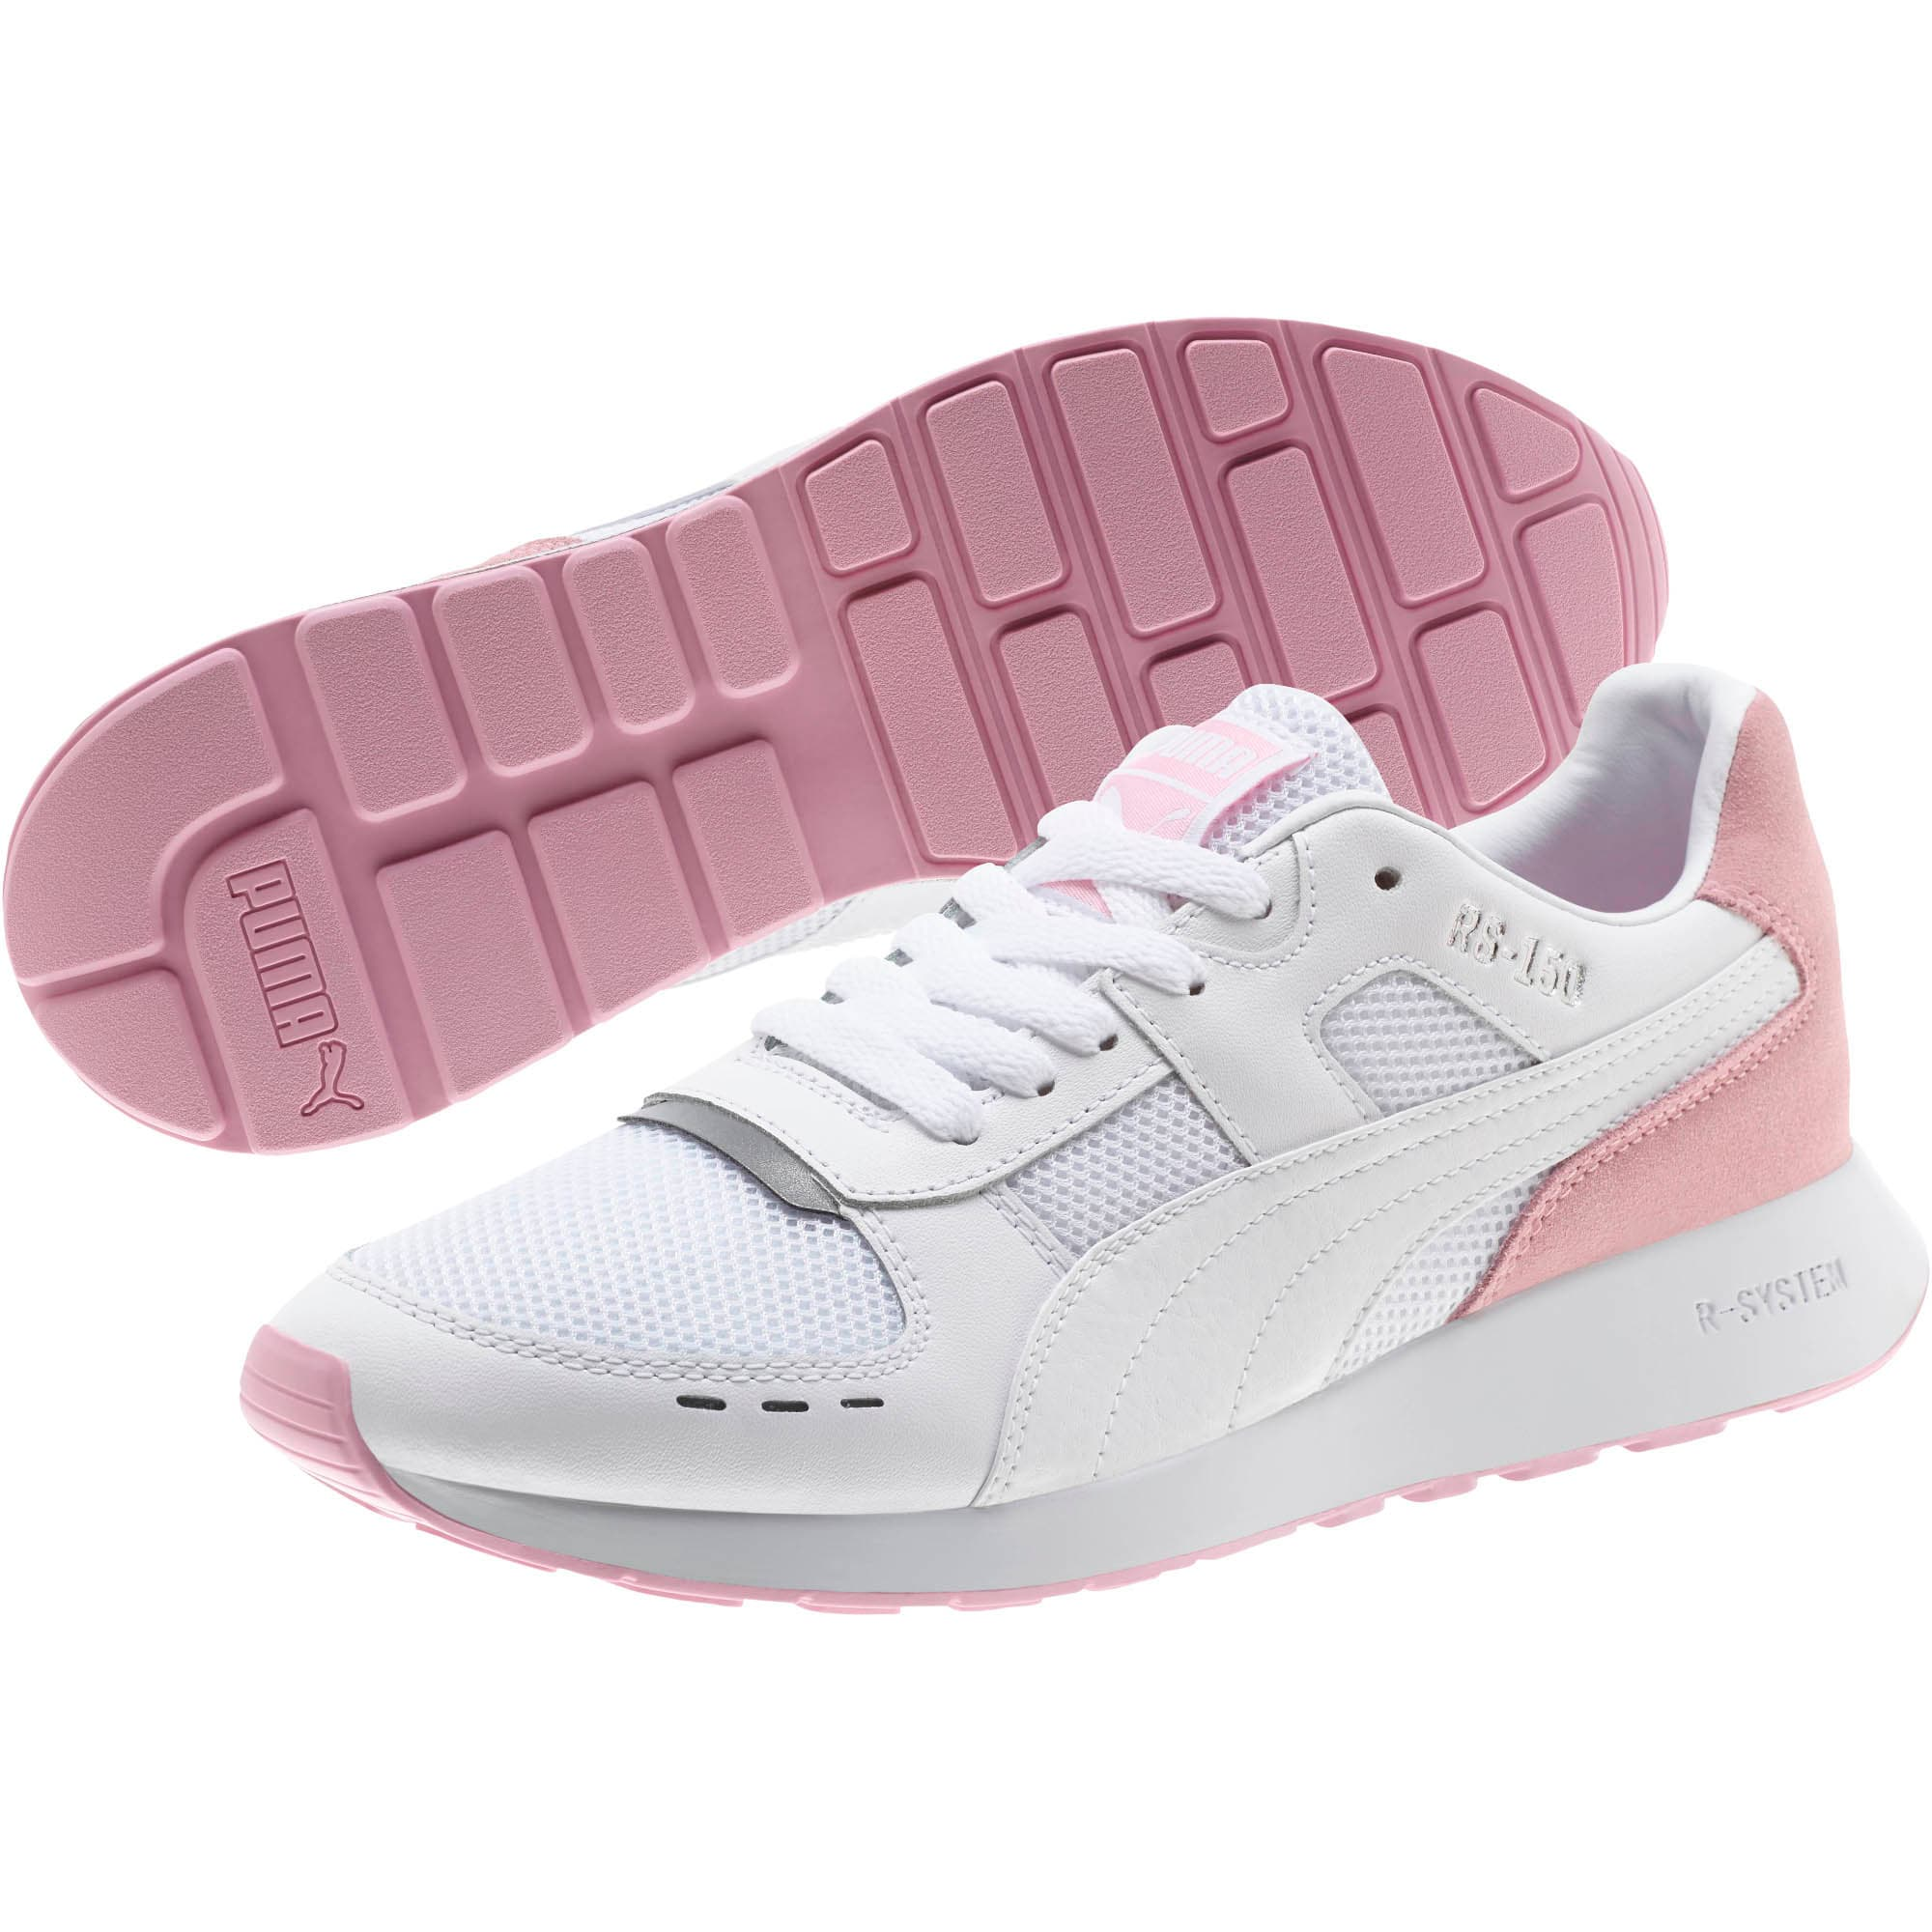 Thumbnail 2 of RS-150 Contrast Women's Sneakers, Puma White-Pale Pink, medium